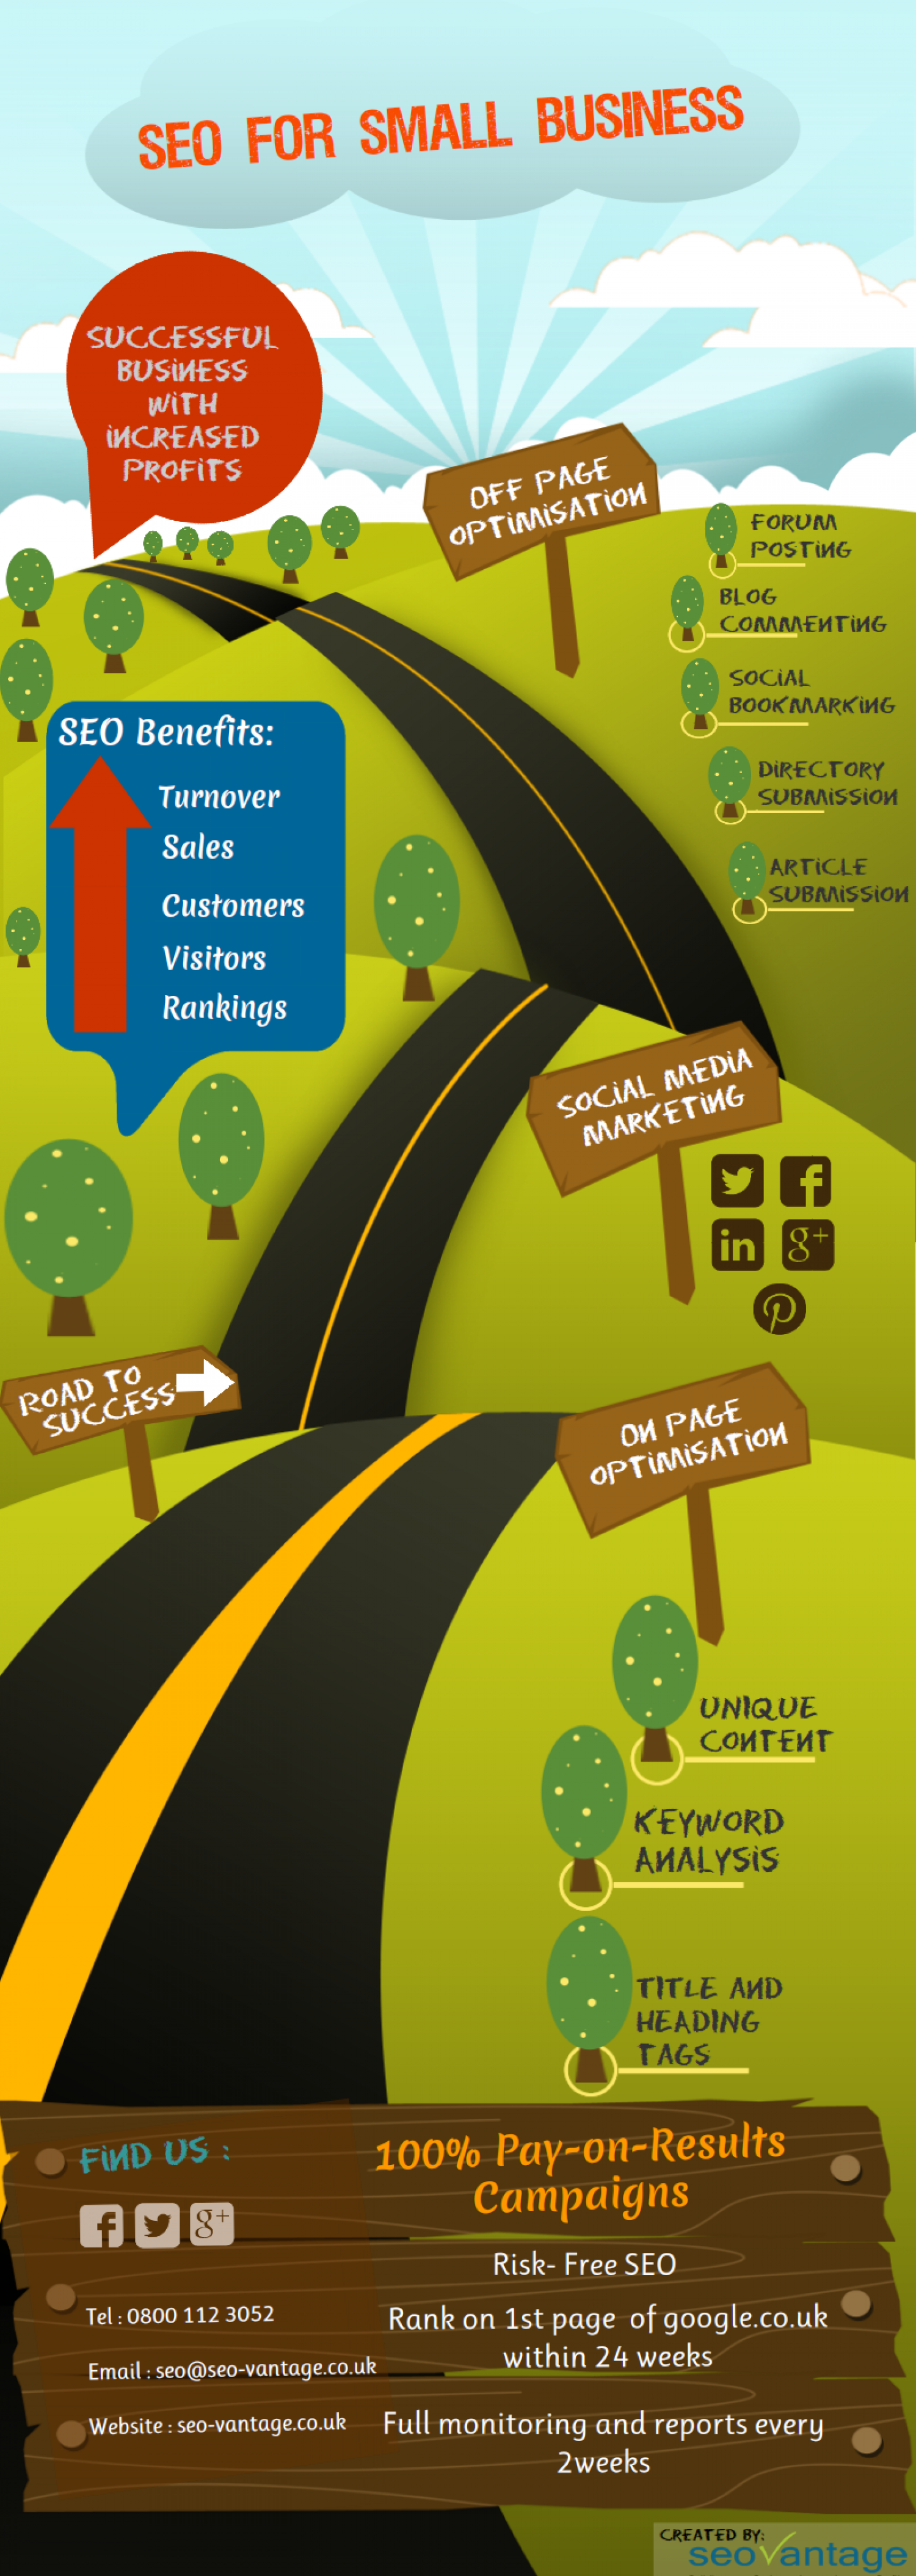 SEO for Small Business Infographic